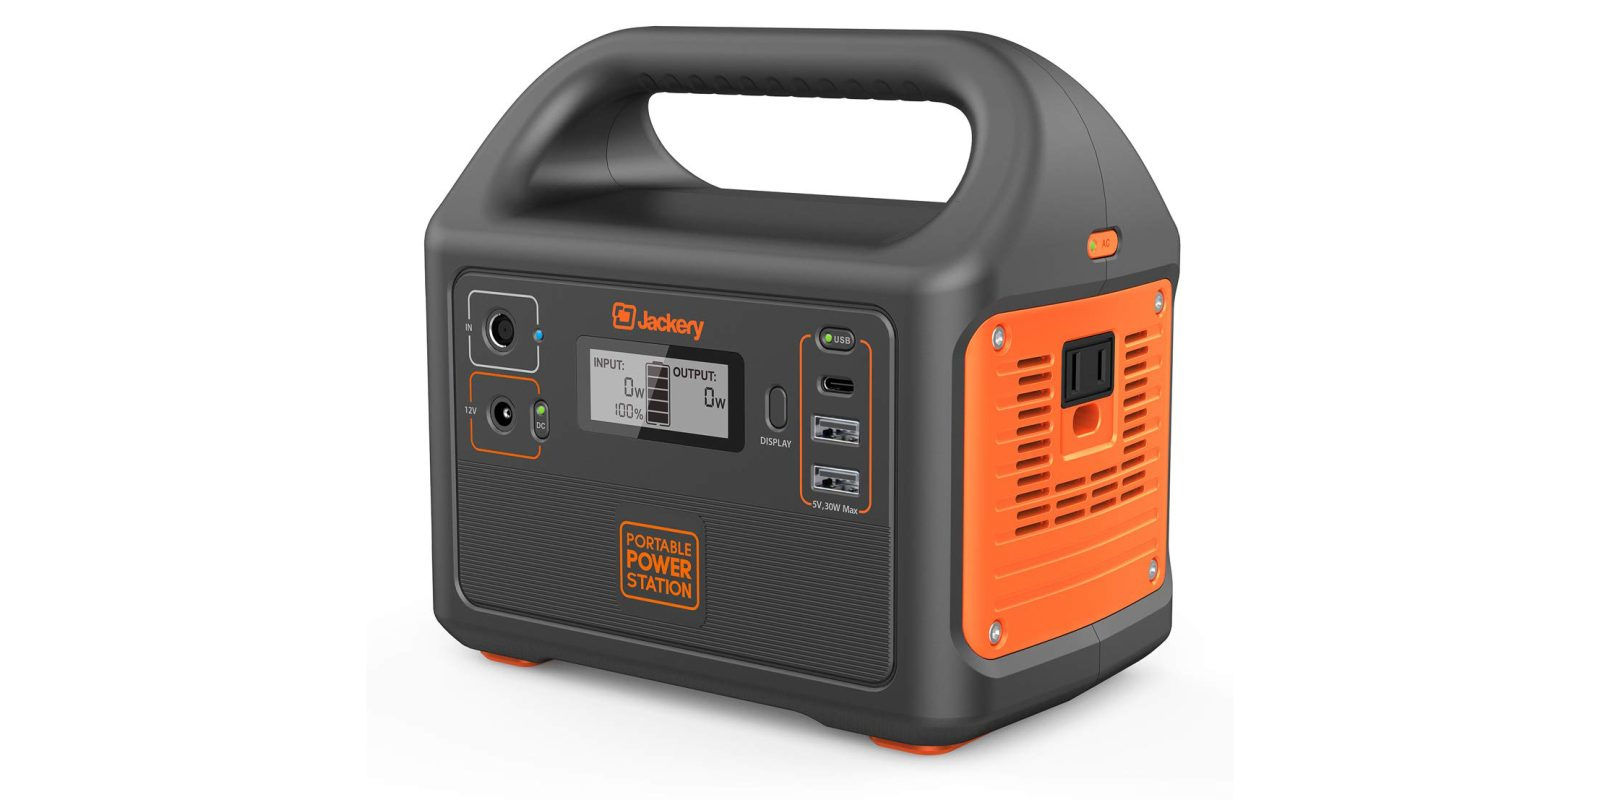 Pick Up The Jackery Portable Solar Generator For 105